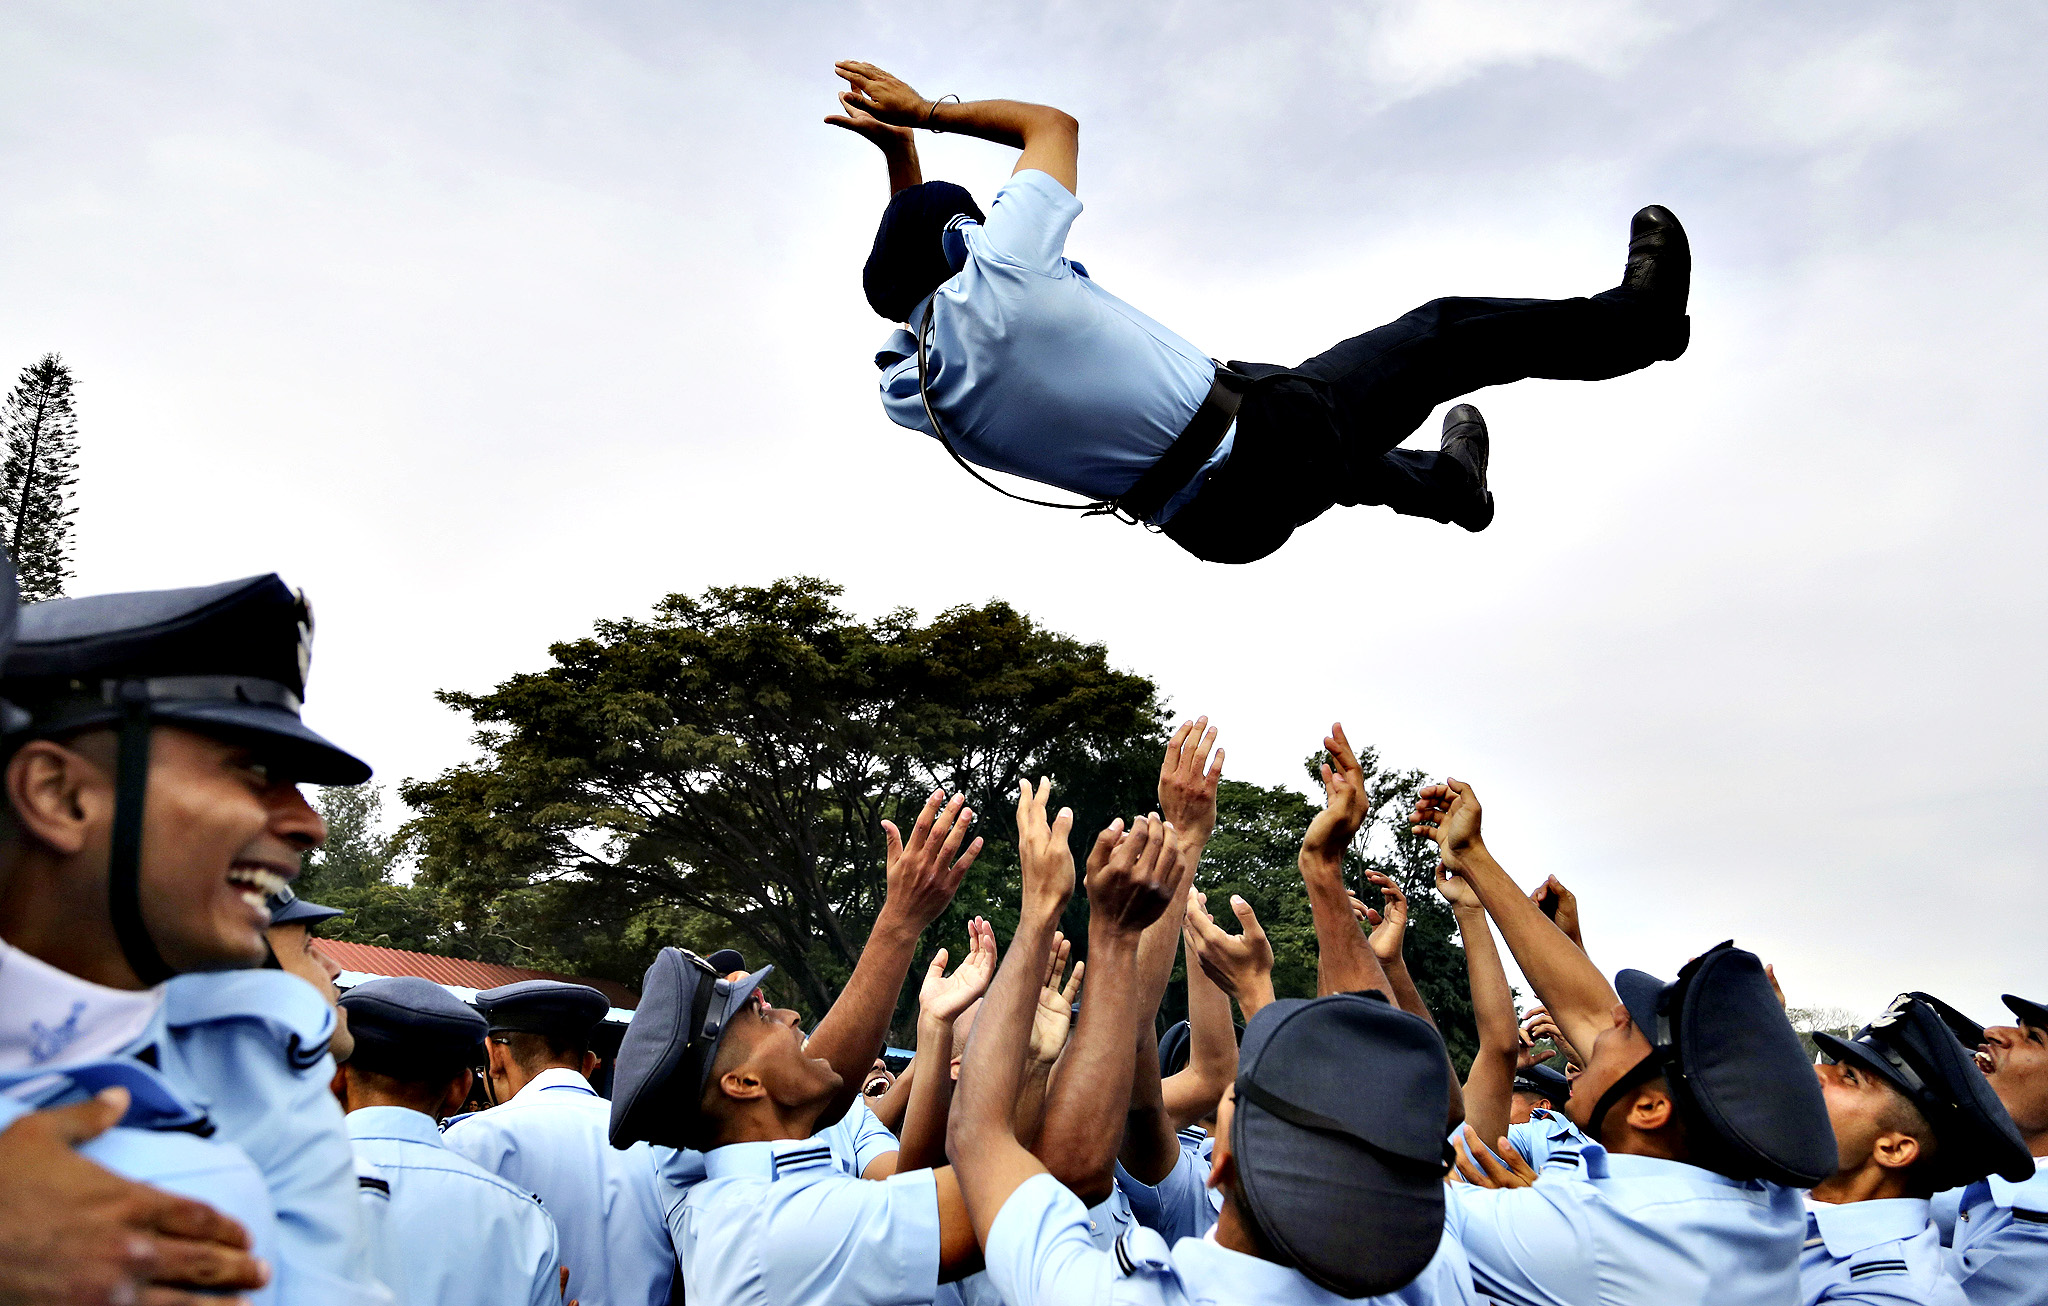 An Indian Air Force graduate is tossed in the air by his colleagues after their passing out parade ceremony in Bangalore, India, Friday, Nov. 28, 2014. A total of 121 officers including 45 women completed Friday after 74 weeks of training.